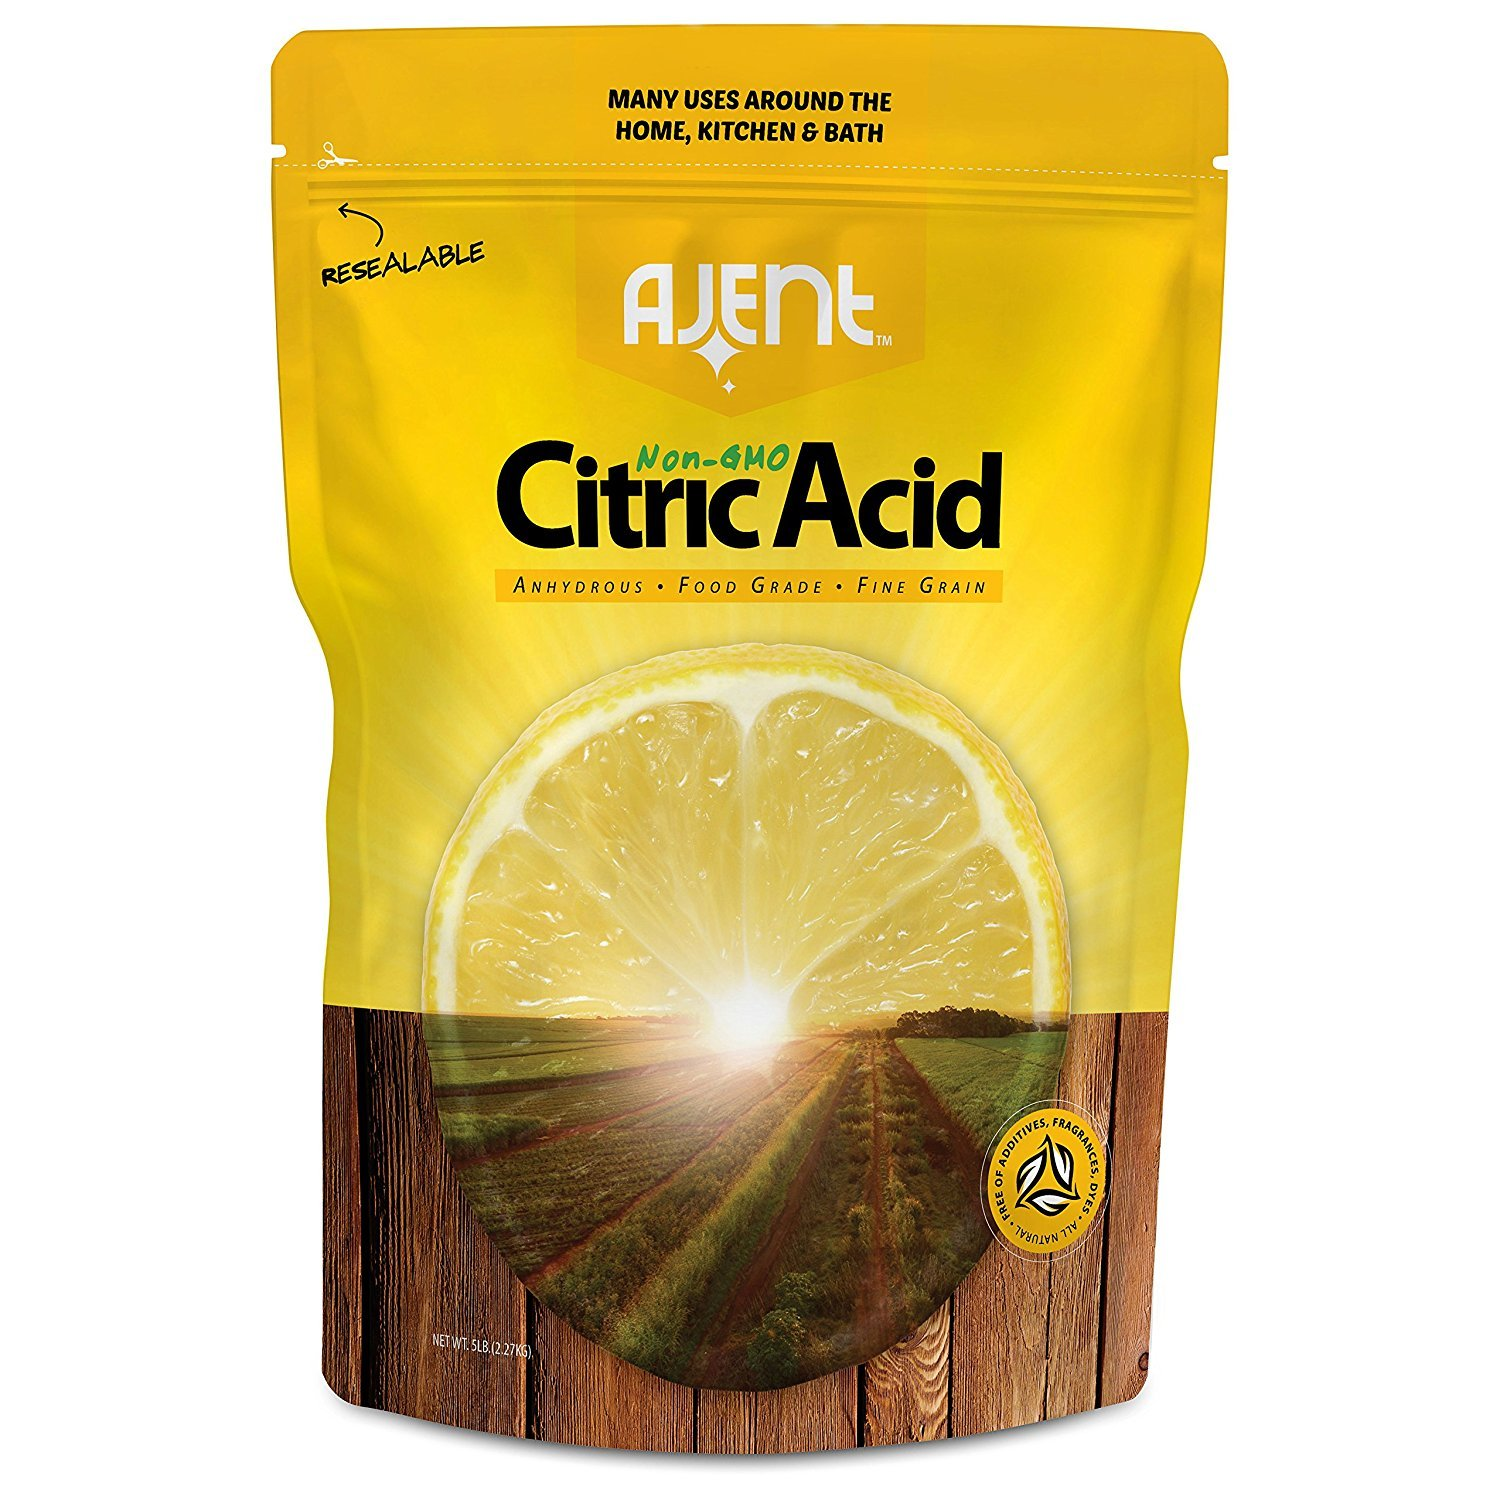 Ajent Citric Acid 100% Pure Food Grade Non-GMO (Approved for Organic Foods) 5 Pound